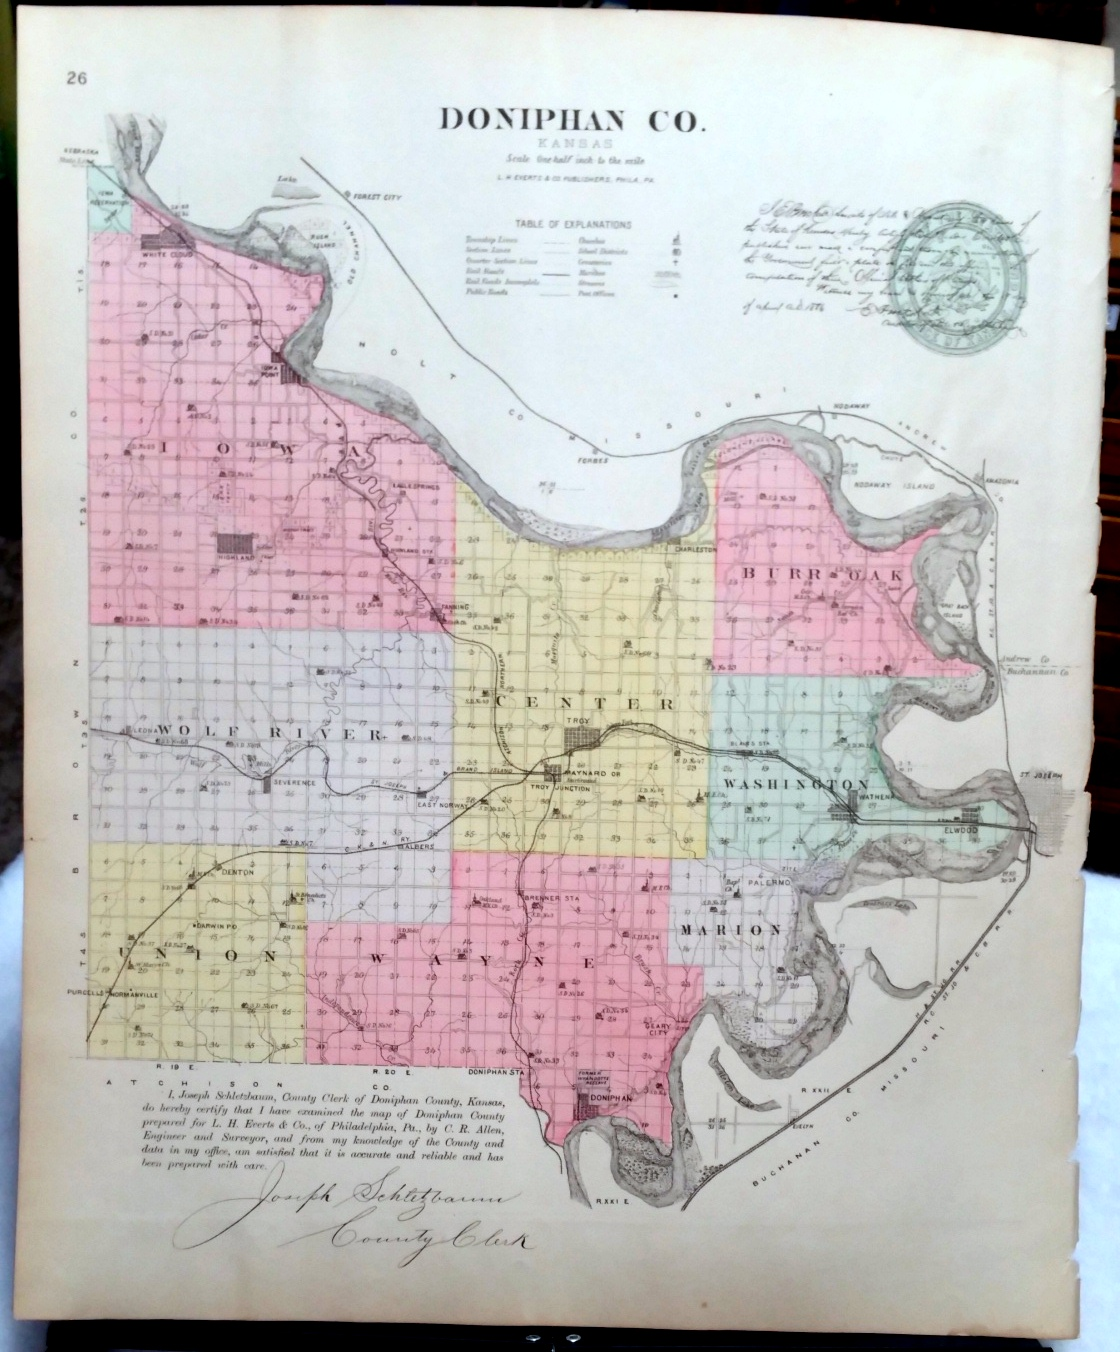 Image for [Map] Doniphan County, Kansas [backed with] Eudora of Douglas Co. And Maynard and White Cloud of Doniphan Co.